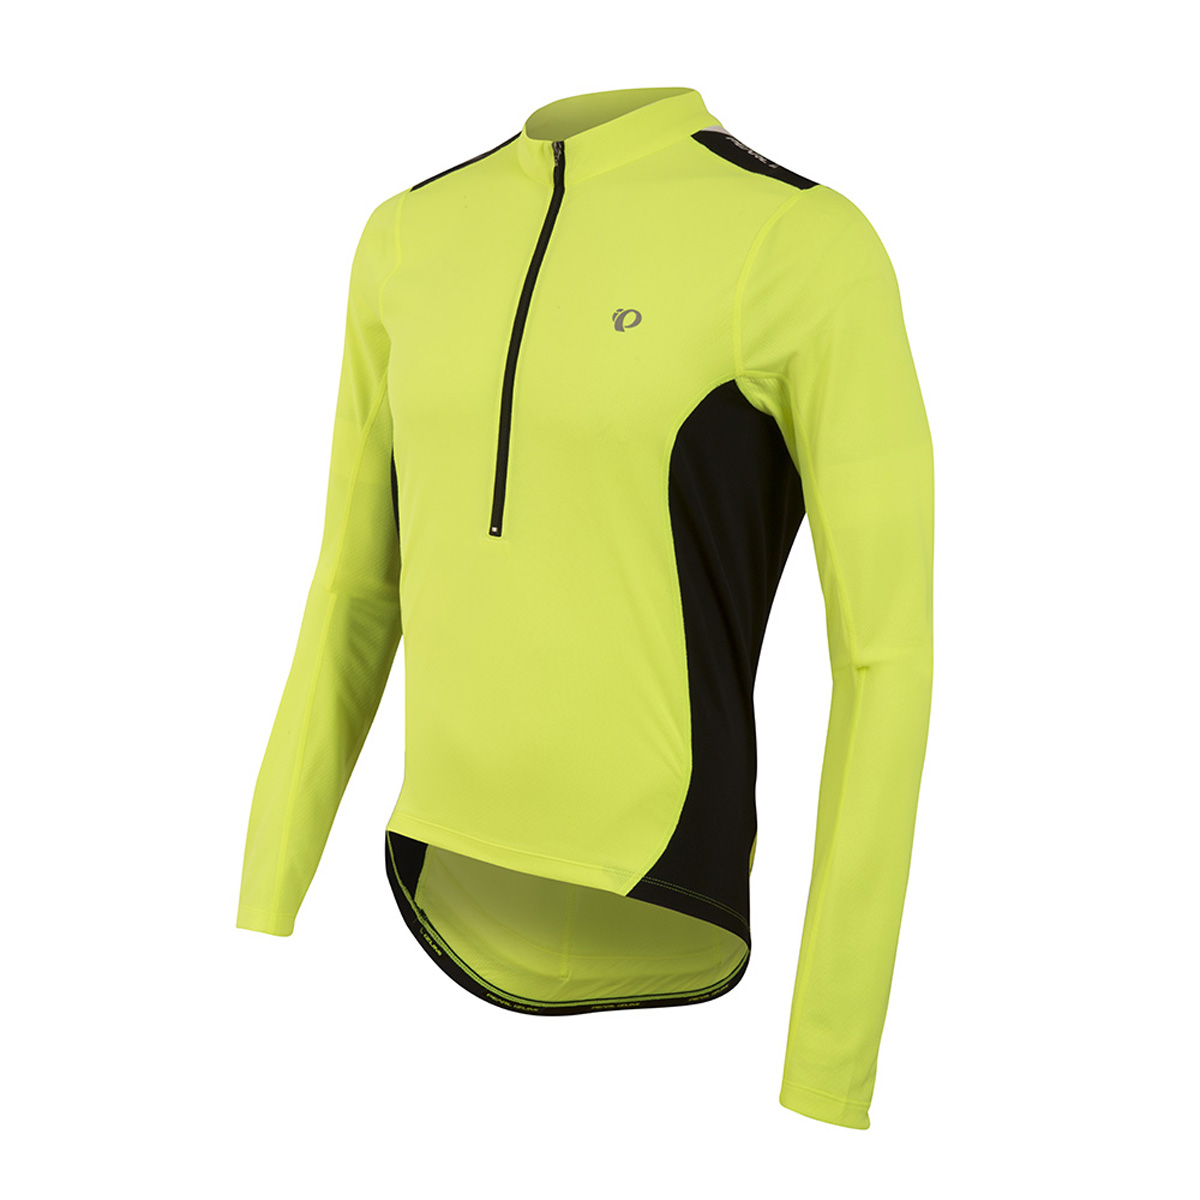 6392acb57 Pearl Izumi 2018 Men s Quest Long Sleeve Cycling Jersey - 11121409 ...